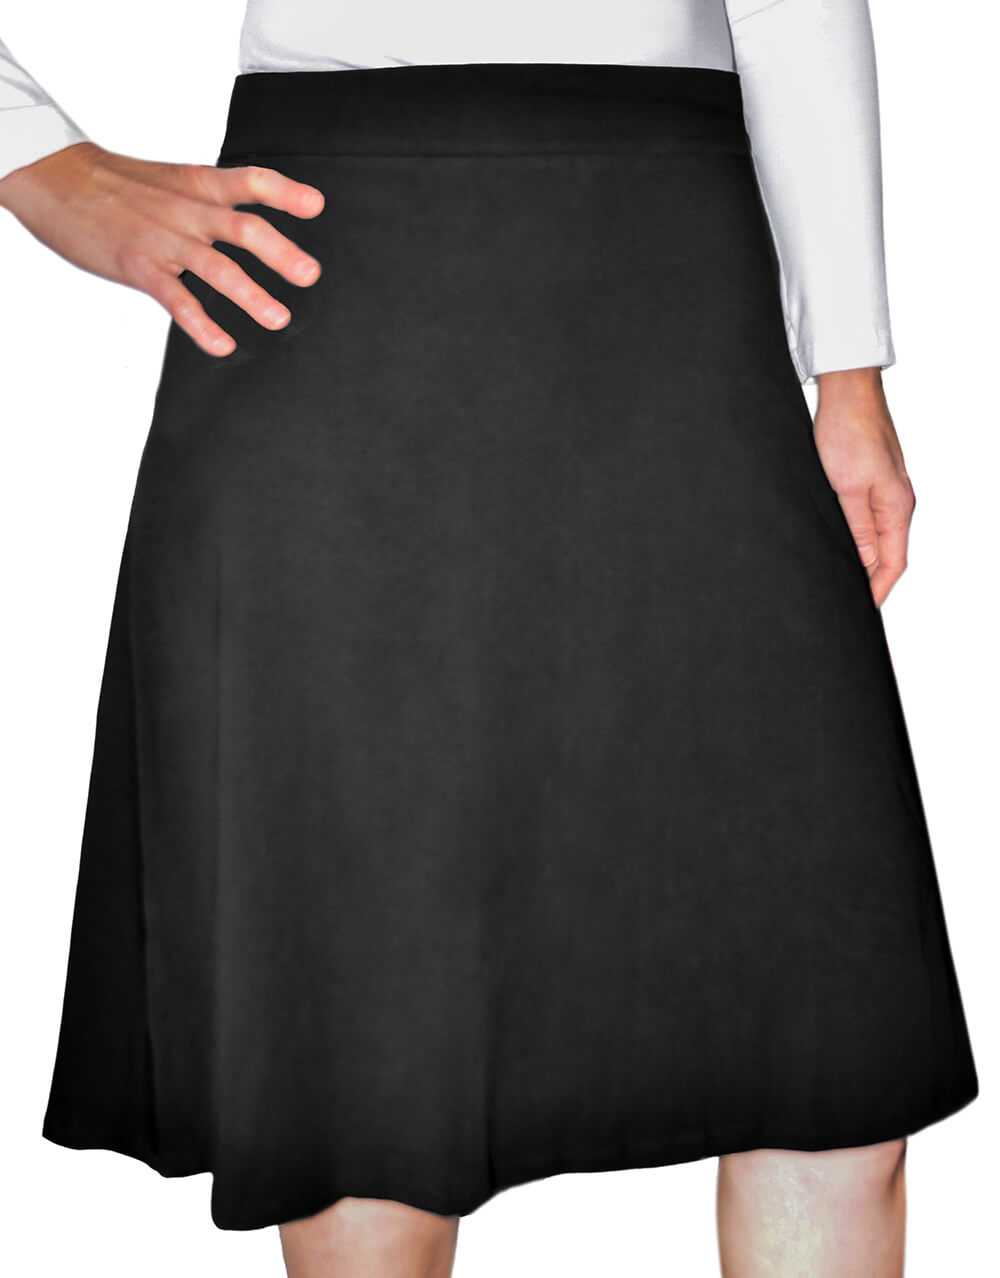 b0cd4131a8 Modest Skirts for Women - Long and Knee Length Skirts